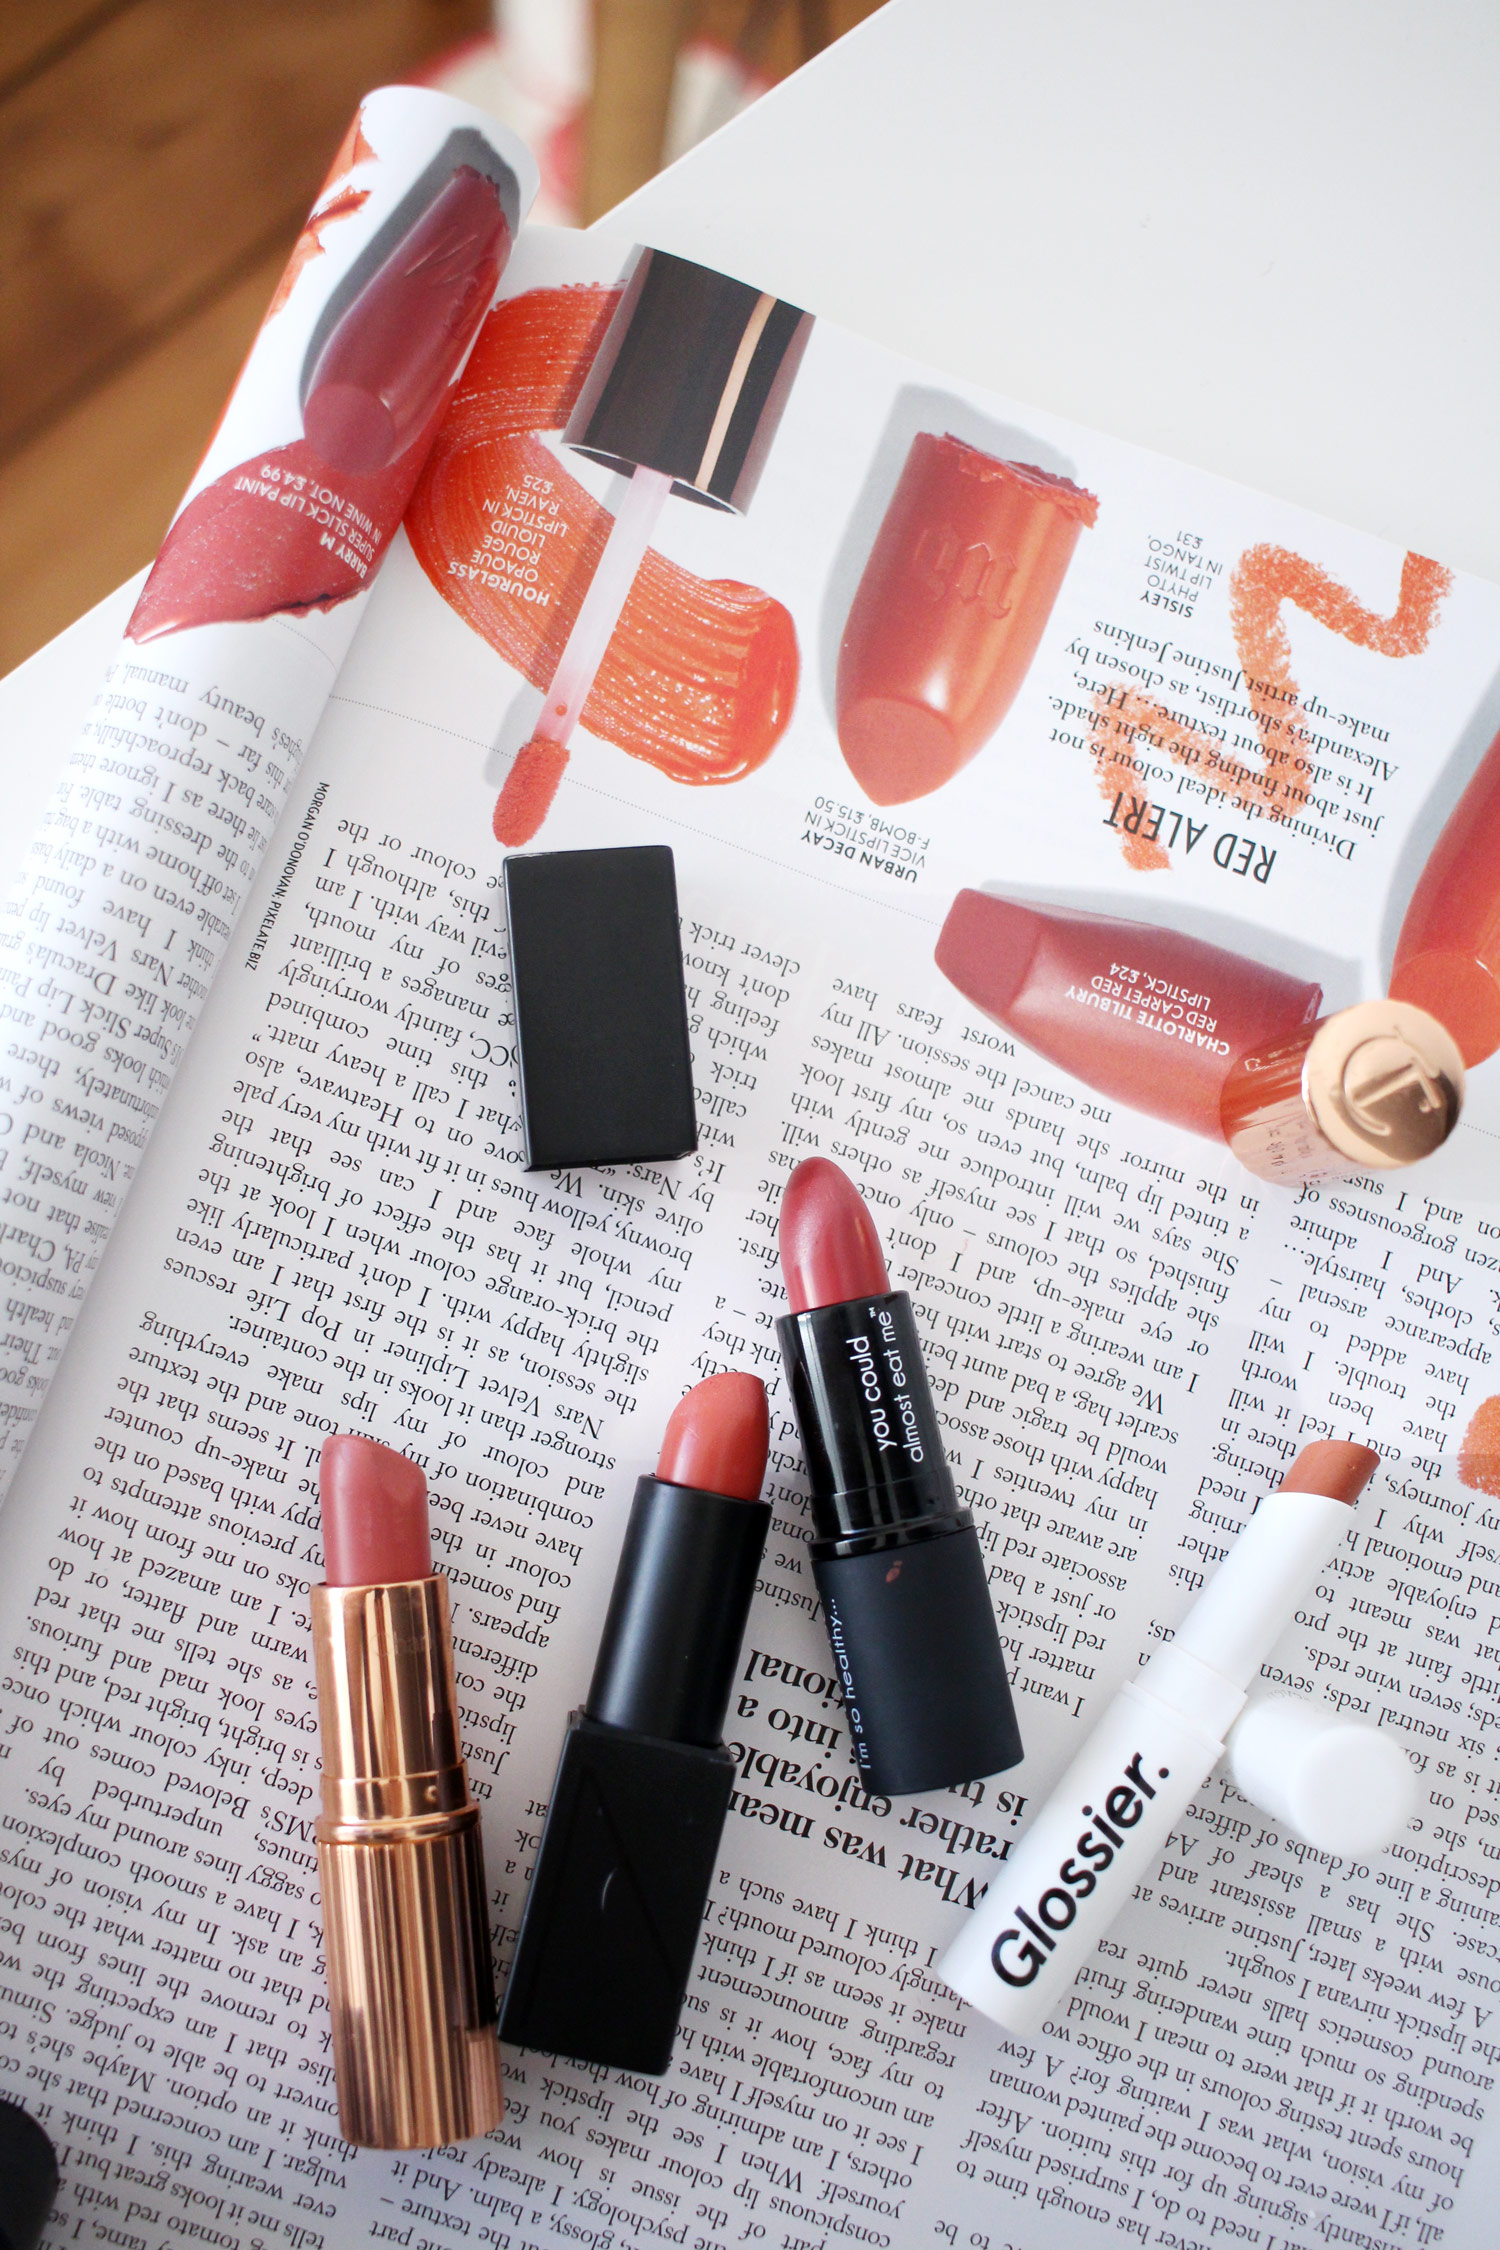 four-peach-pink-rose-lipsticks-to-try-now-3